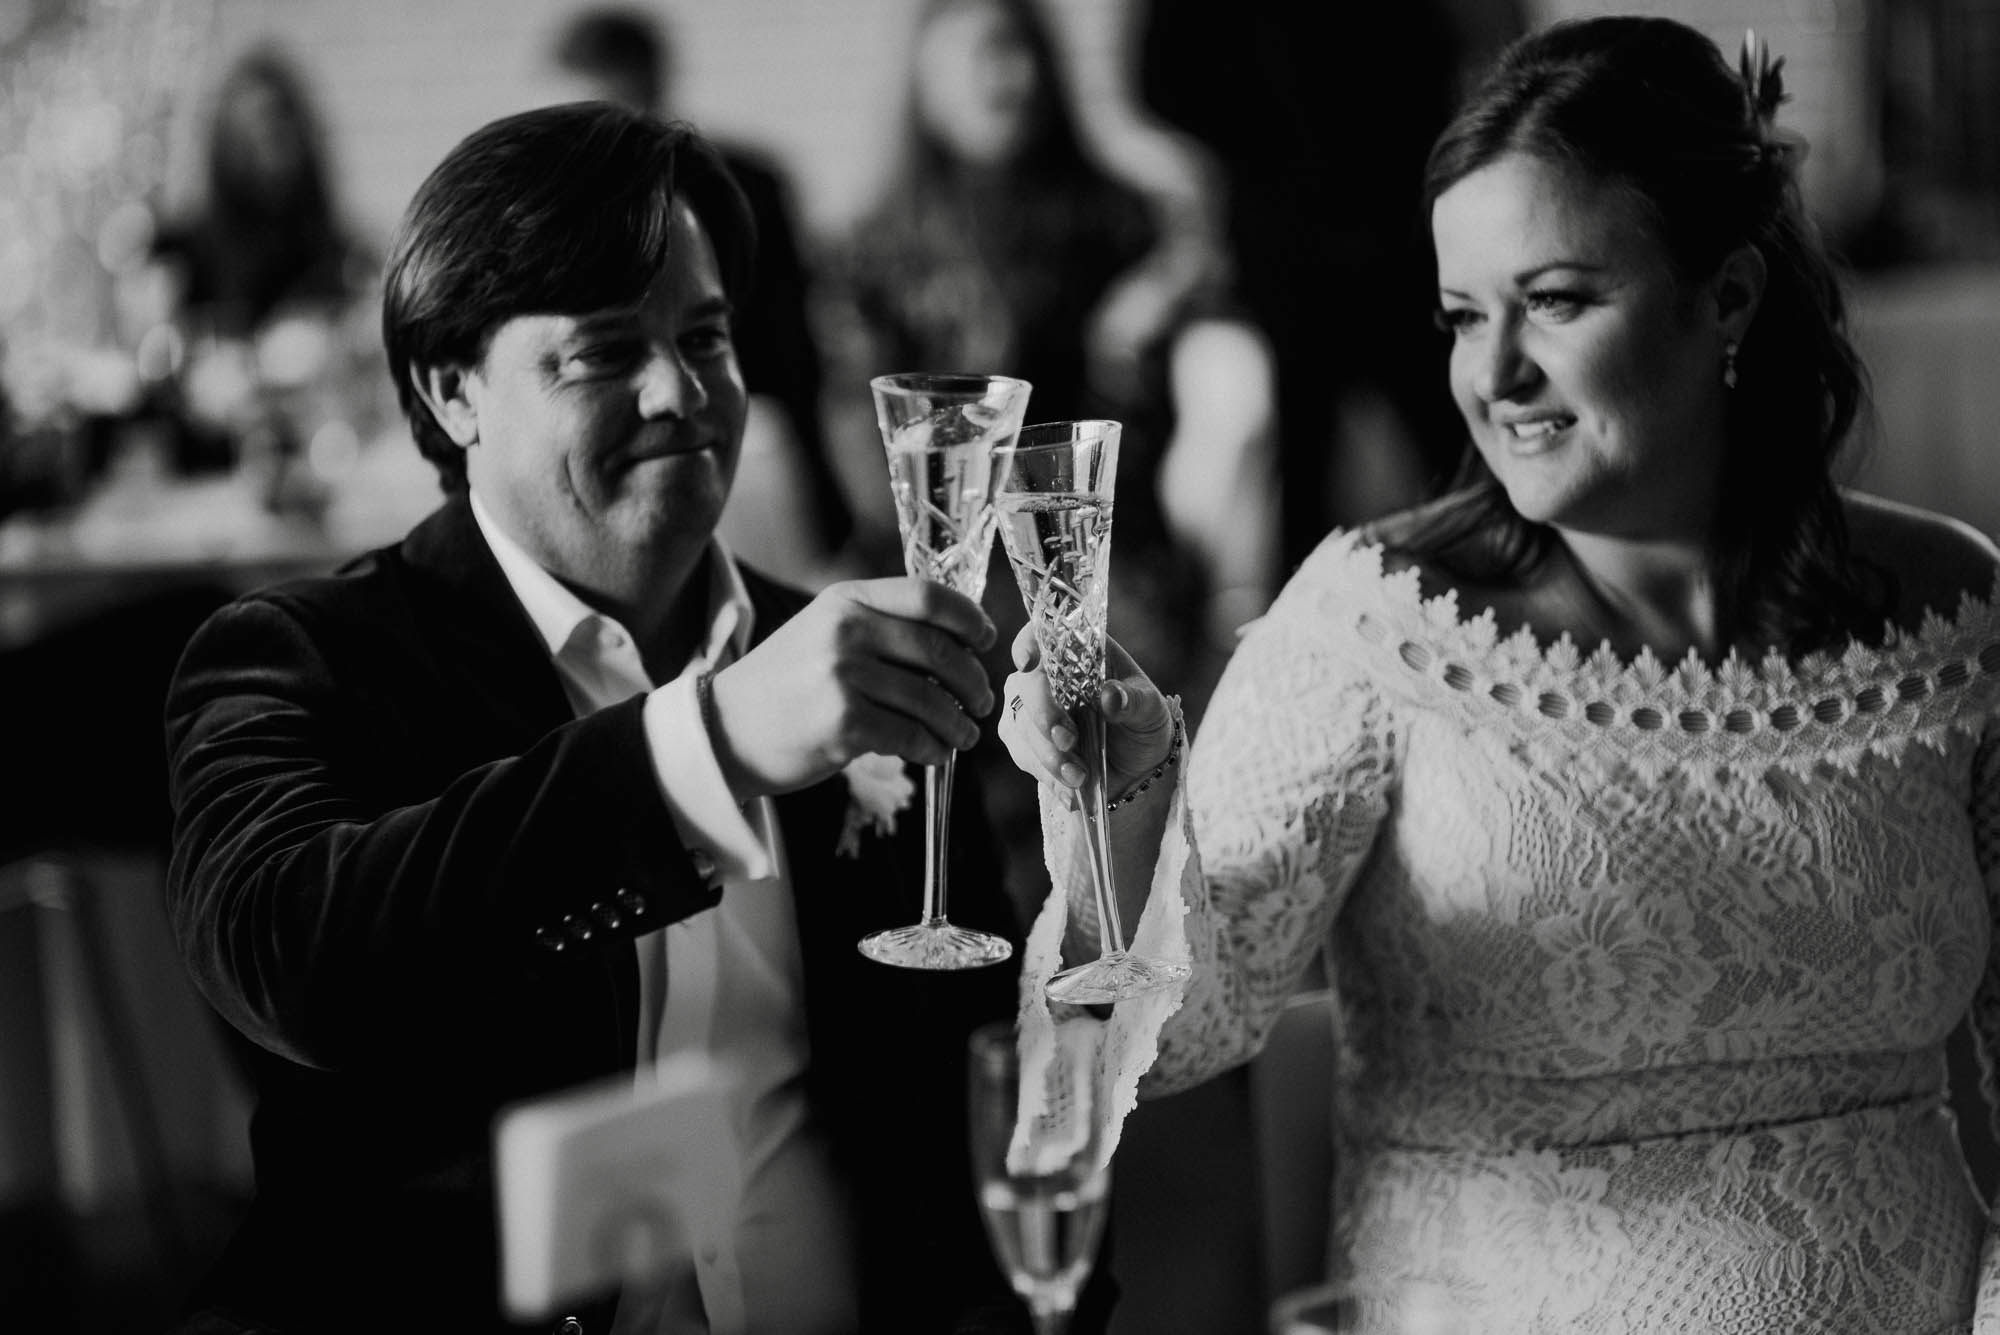 black and white wedding photos, bride and groom toast with waterford crystal champagne flutes at a brunch wedding in austin texas, brunch wedding photography, south congress hotel wedding